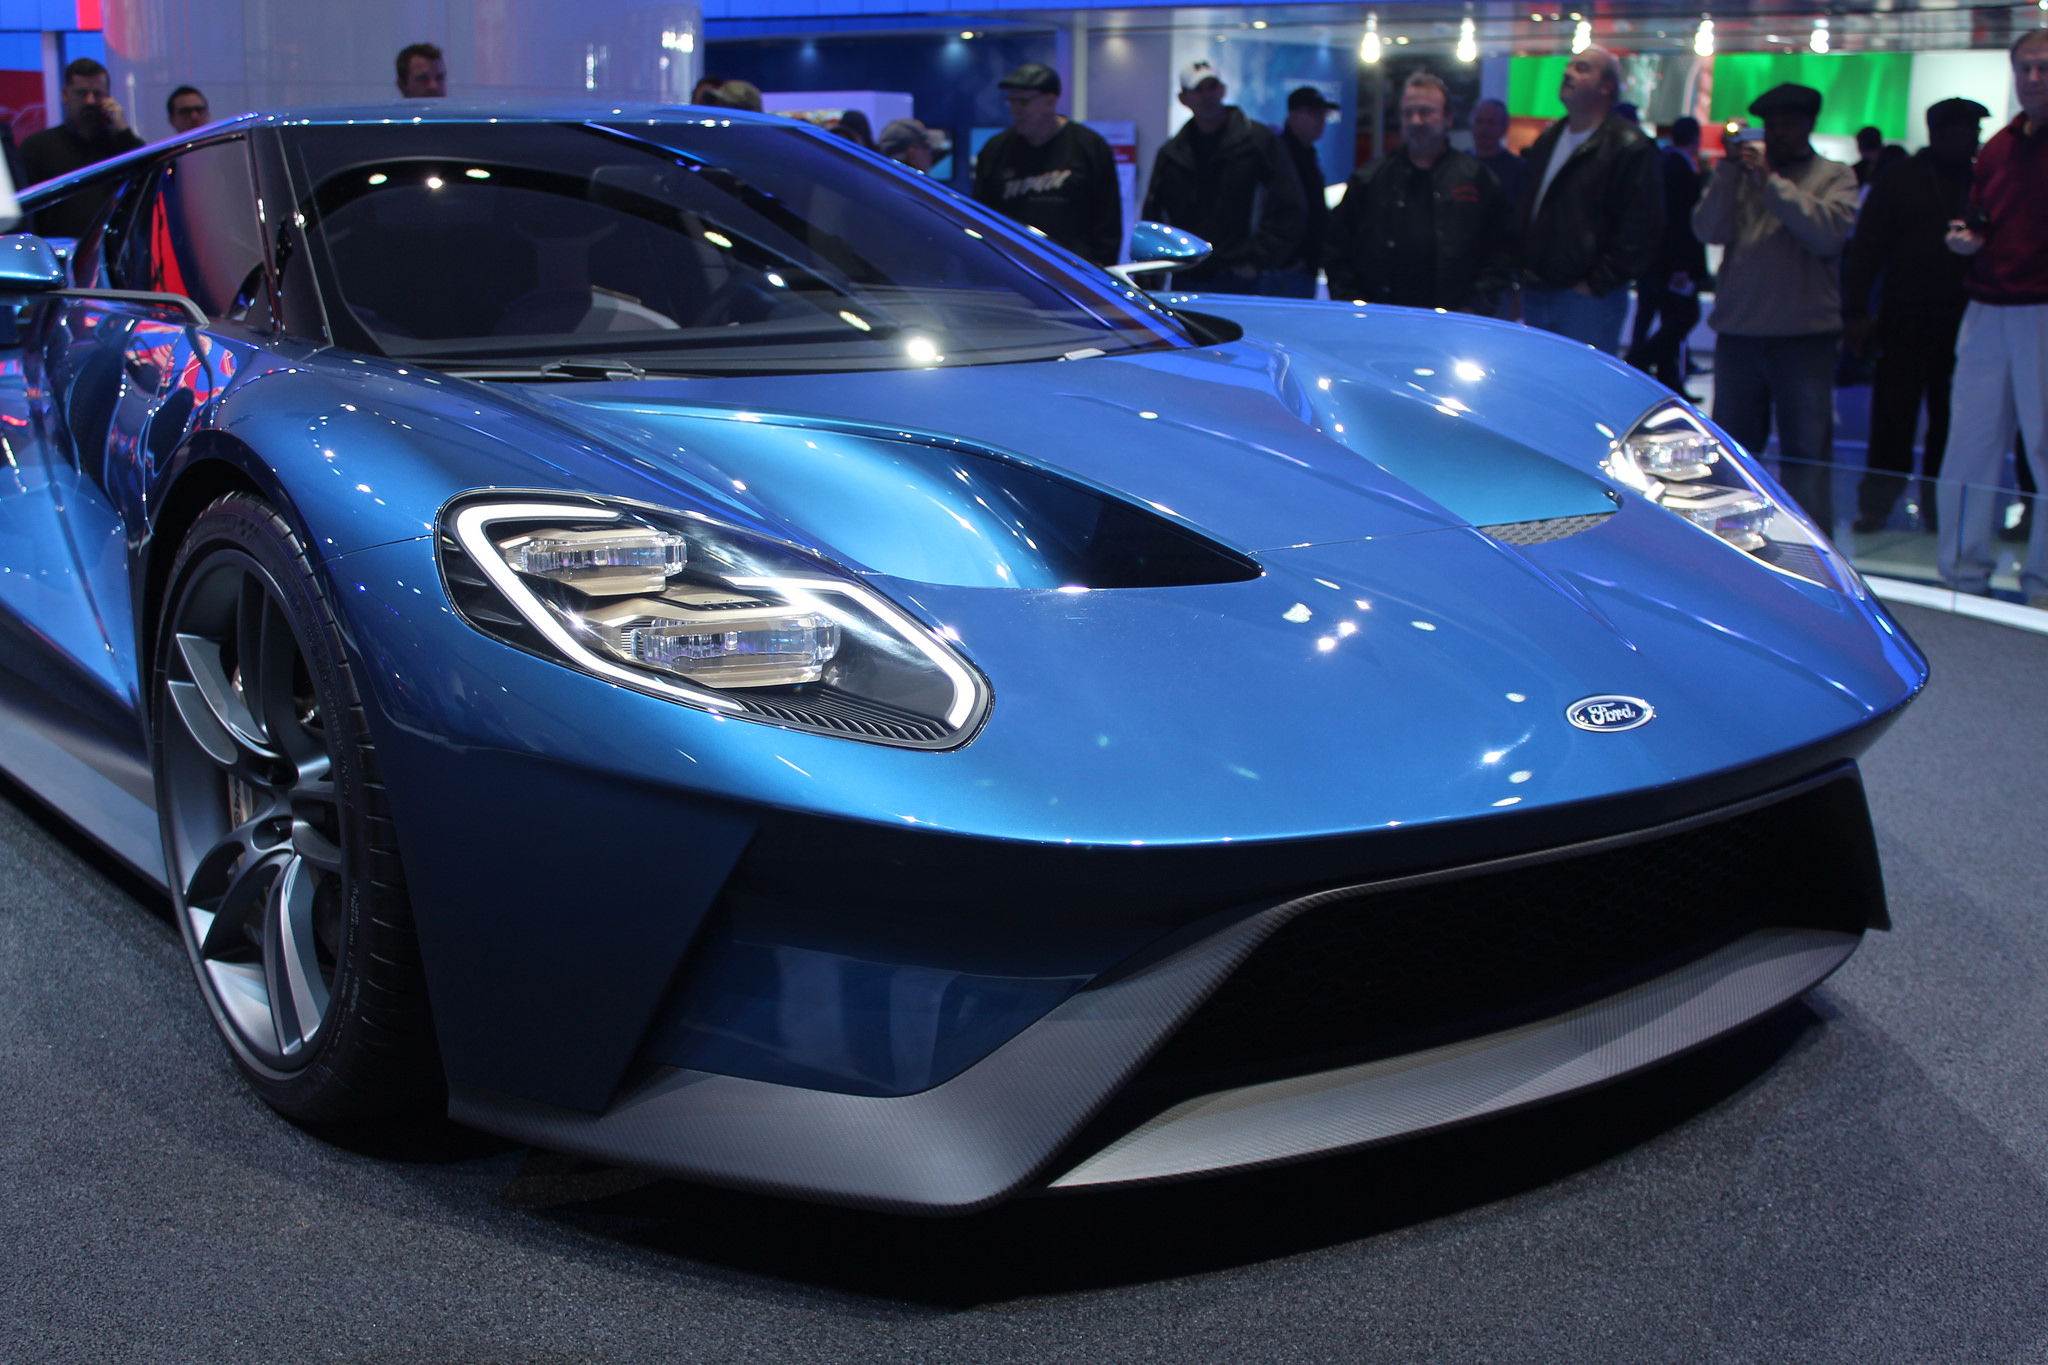 Ford technology